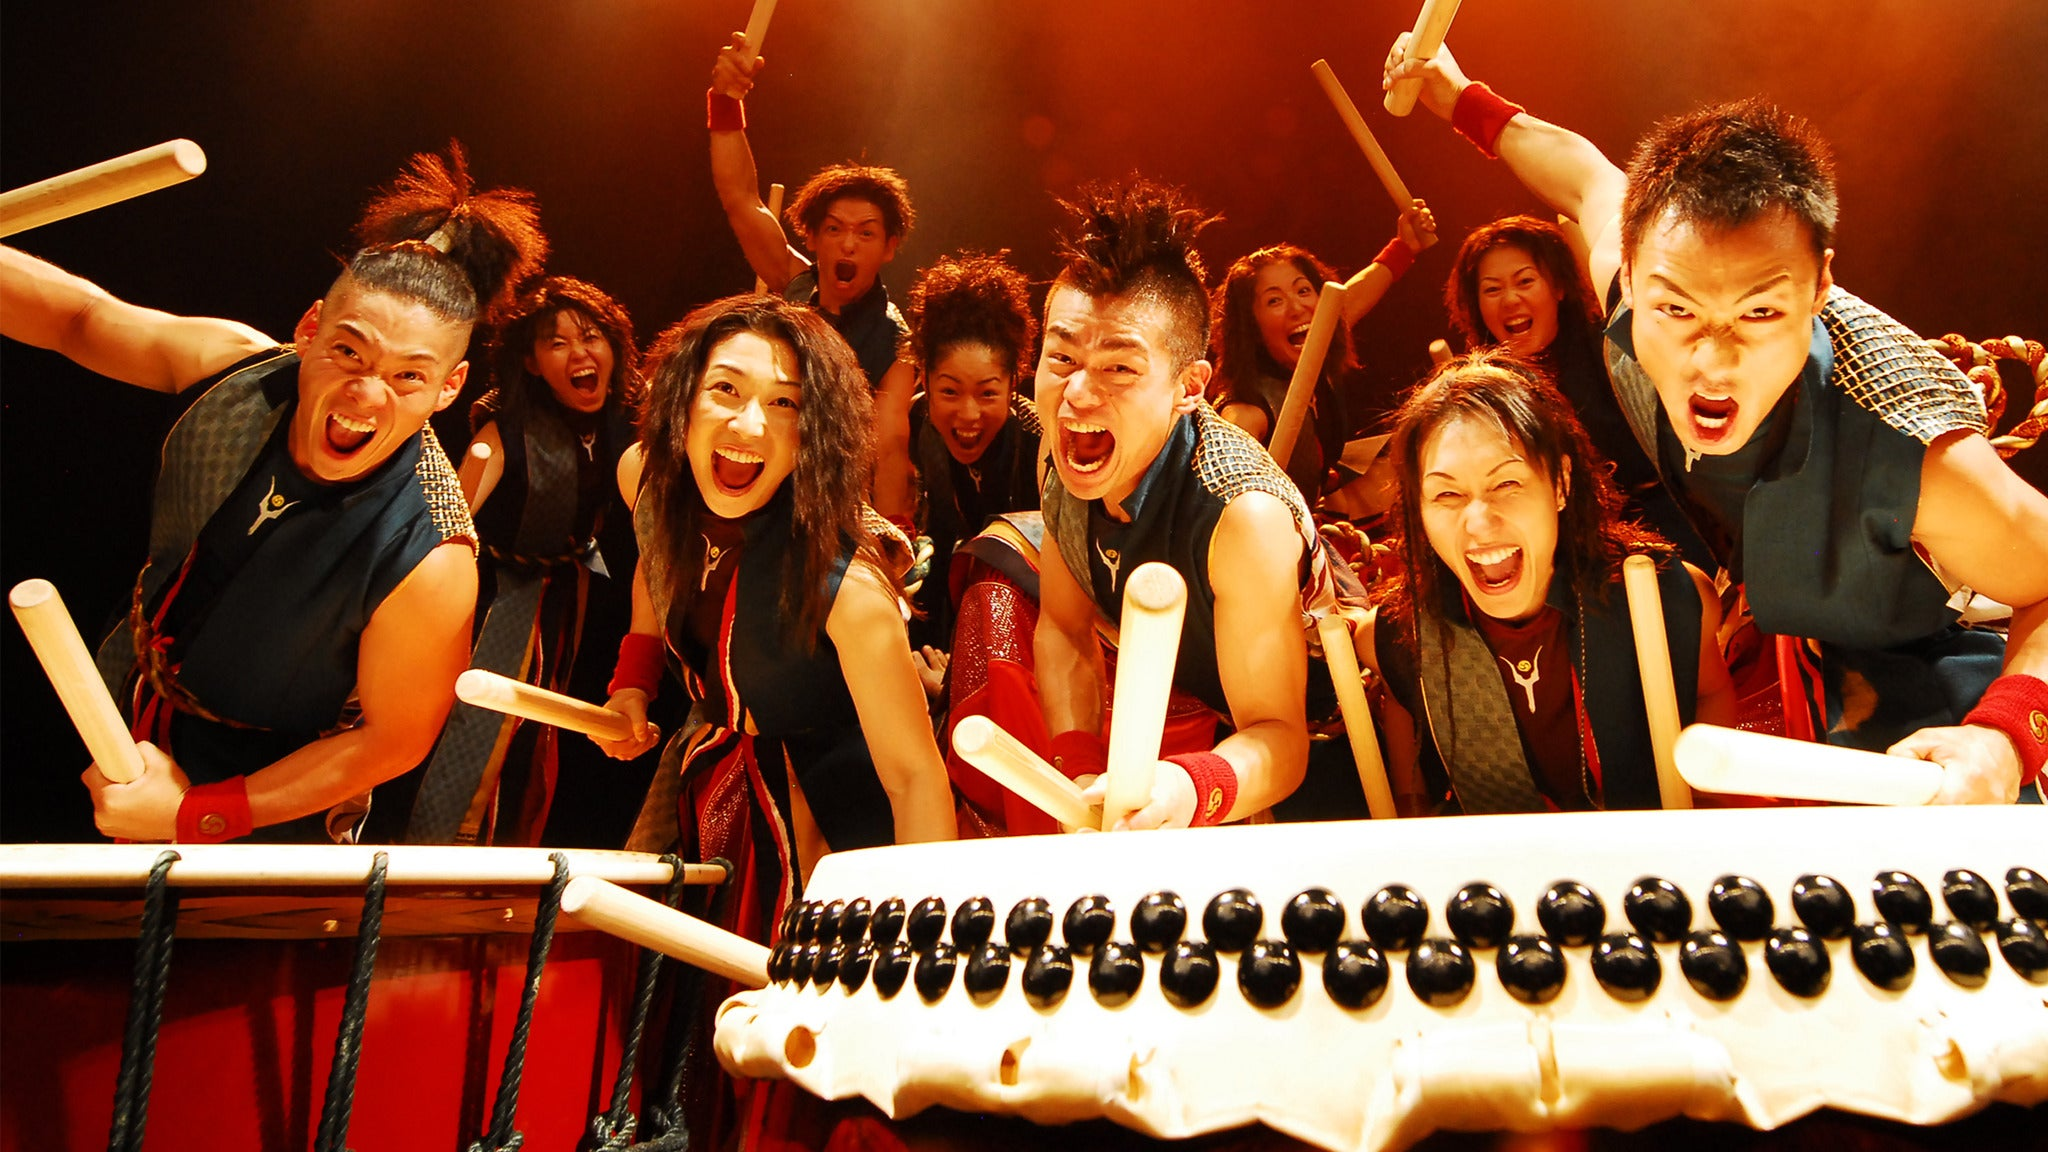 Yamato - The Drummers Of Japan,